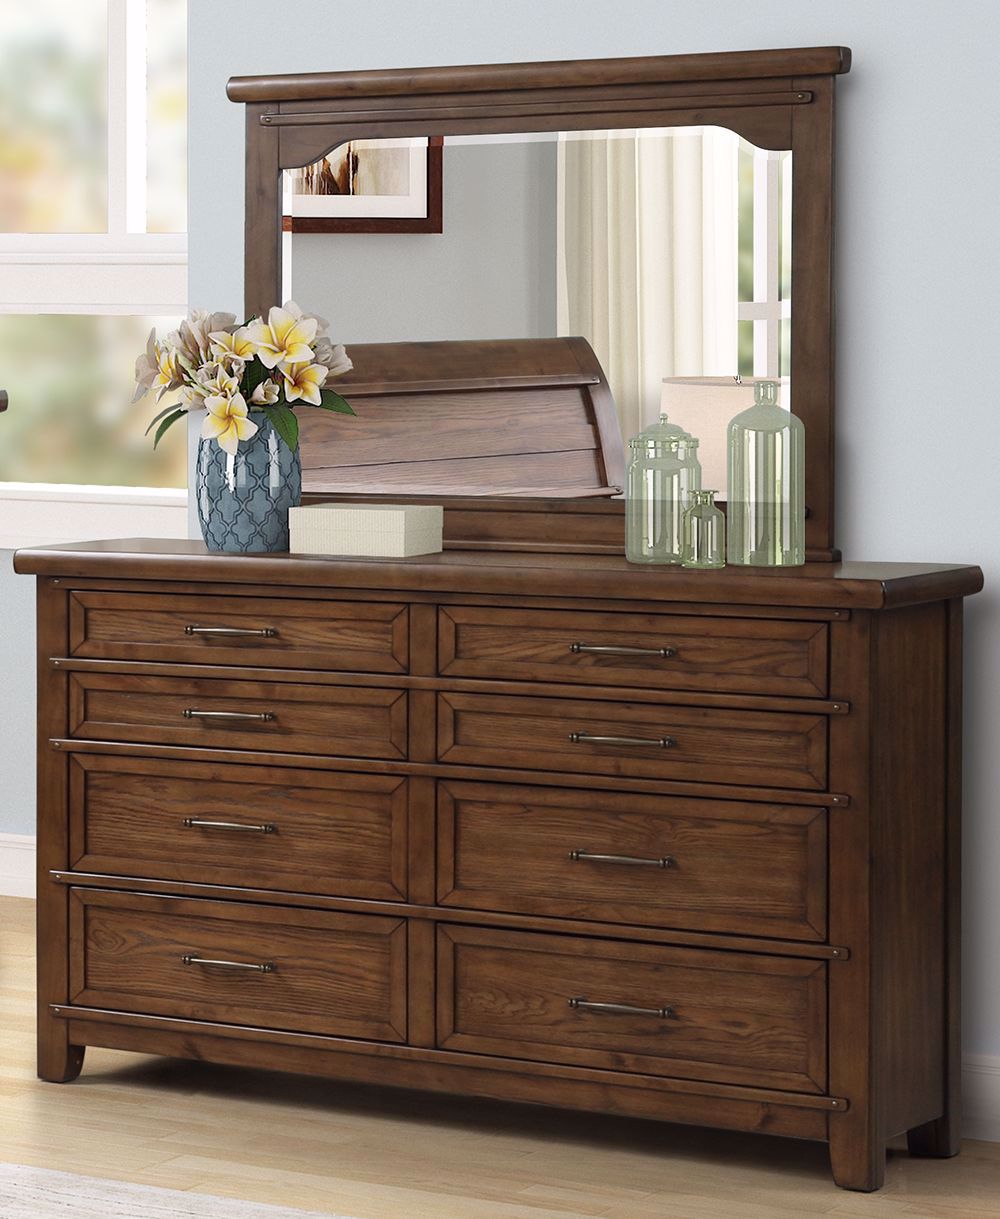 Picture of Fairfox County Dresser and Mirror